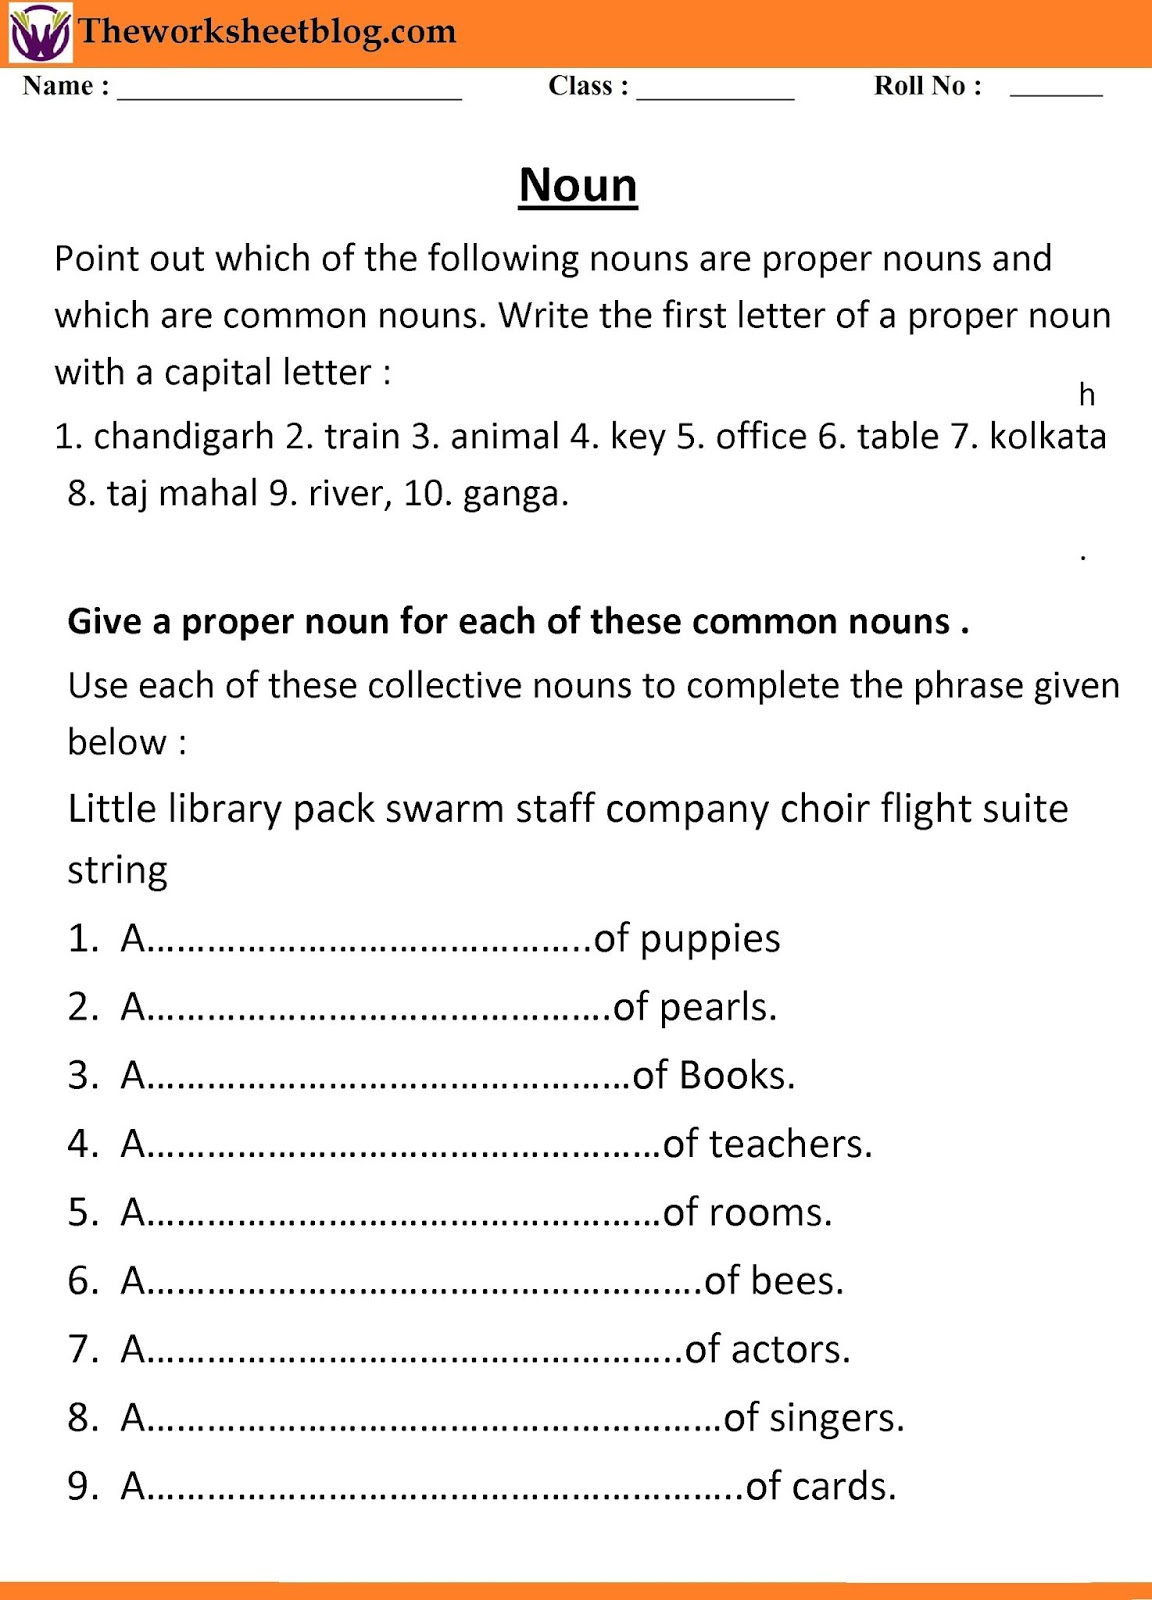 hight resolution of Noun worksheets for Grade 1 and 2. - Theworksheetsblog